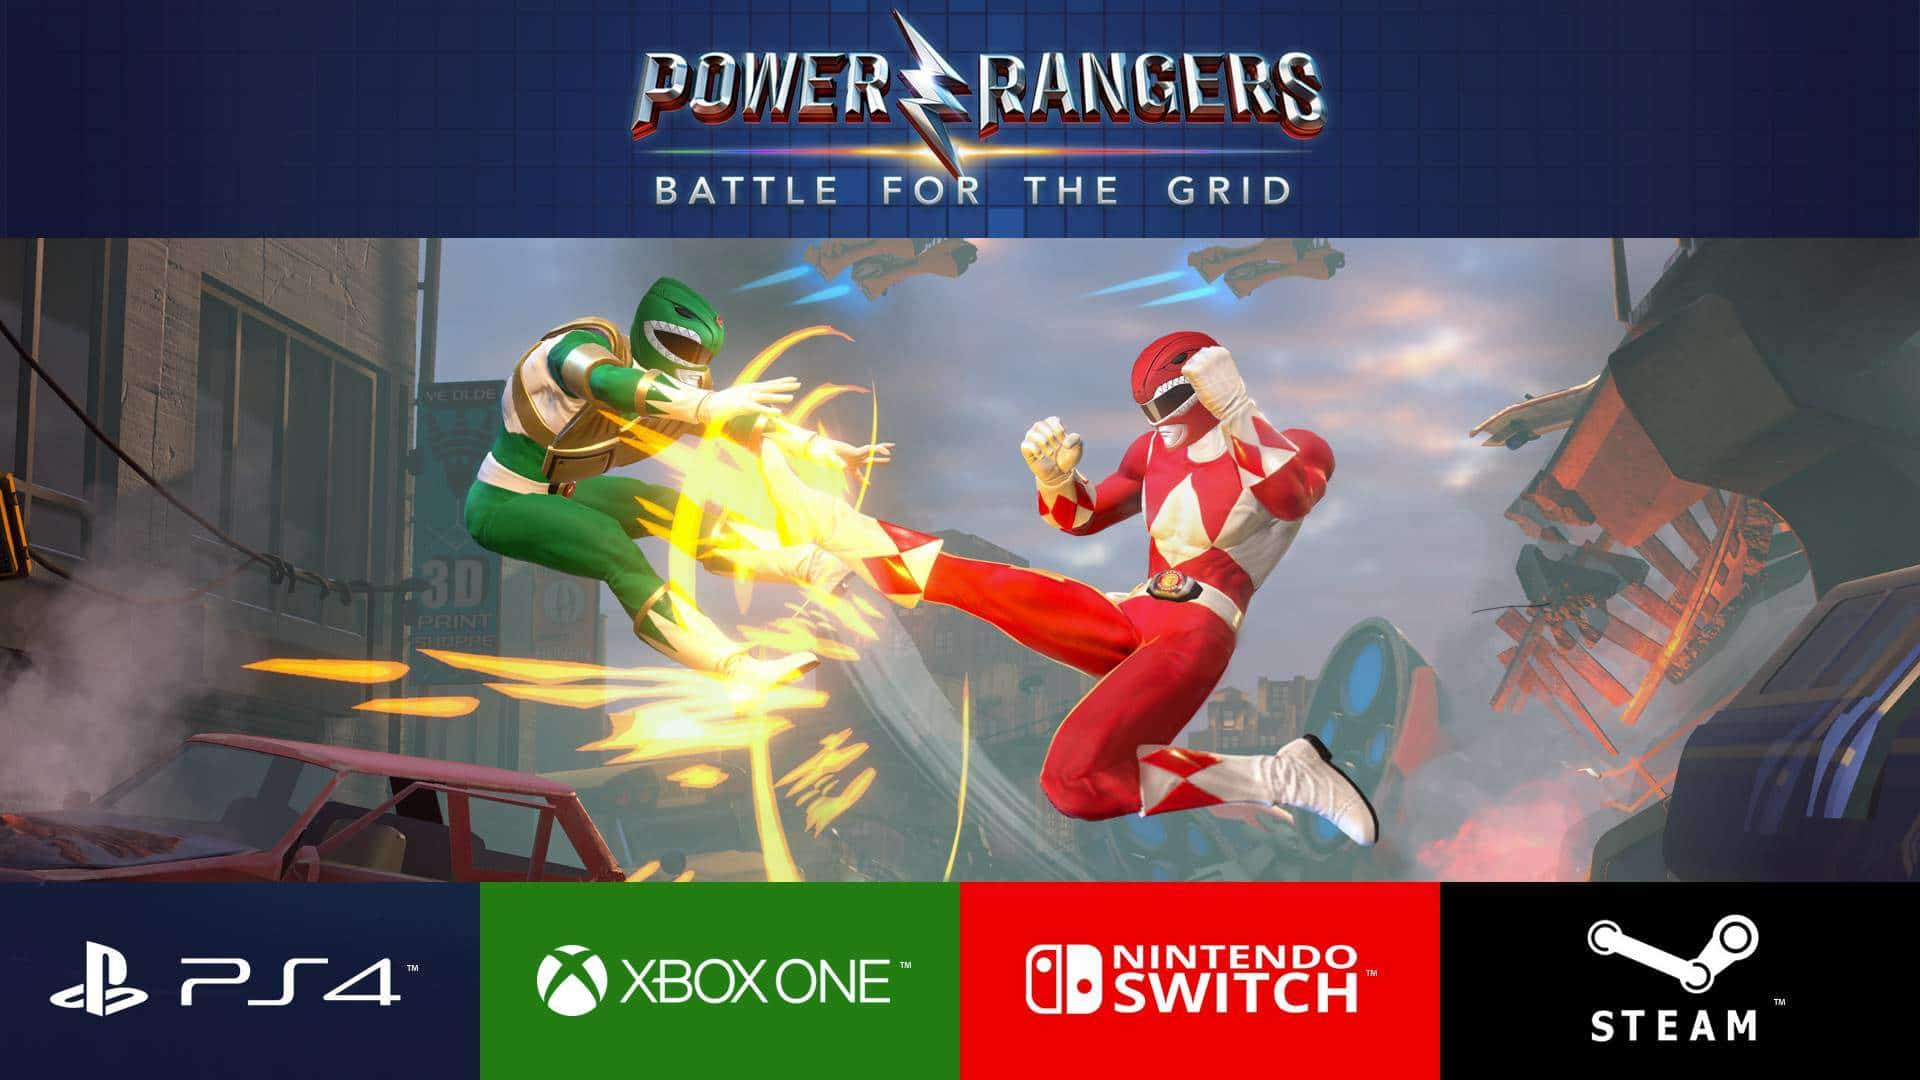 PowerRangersBattlefortheGrid